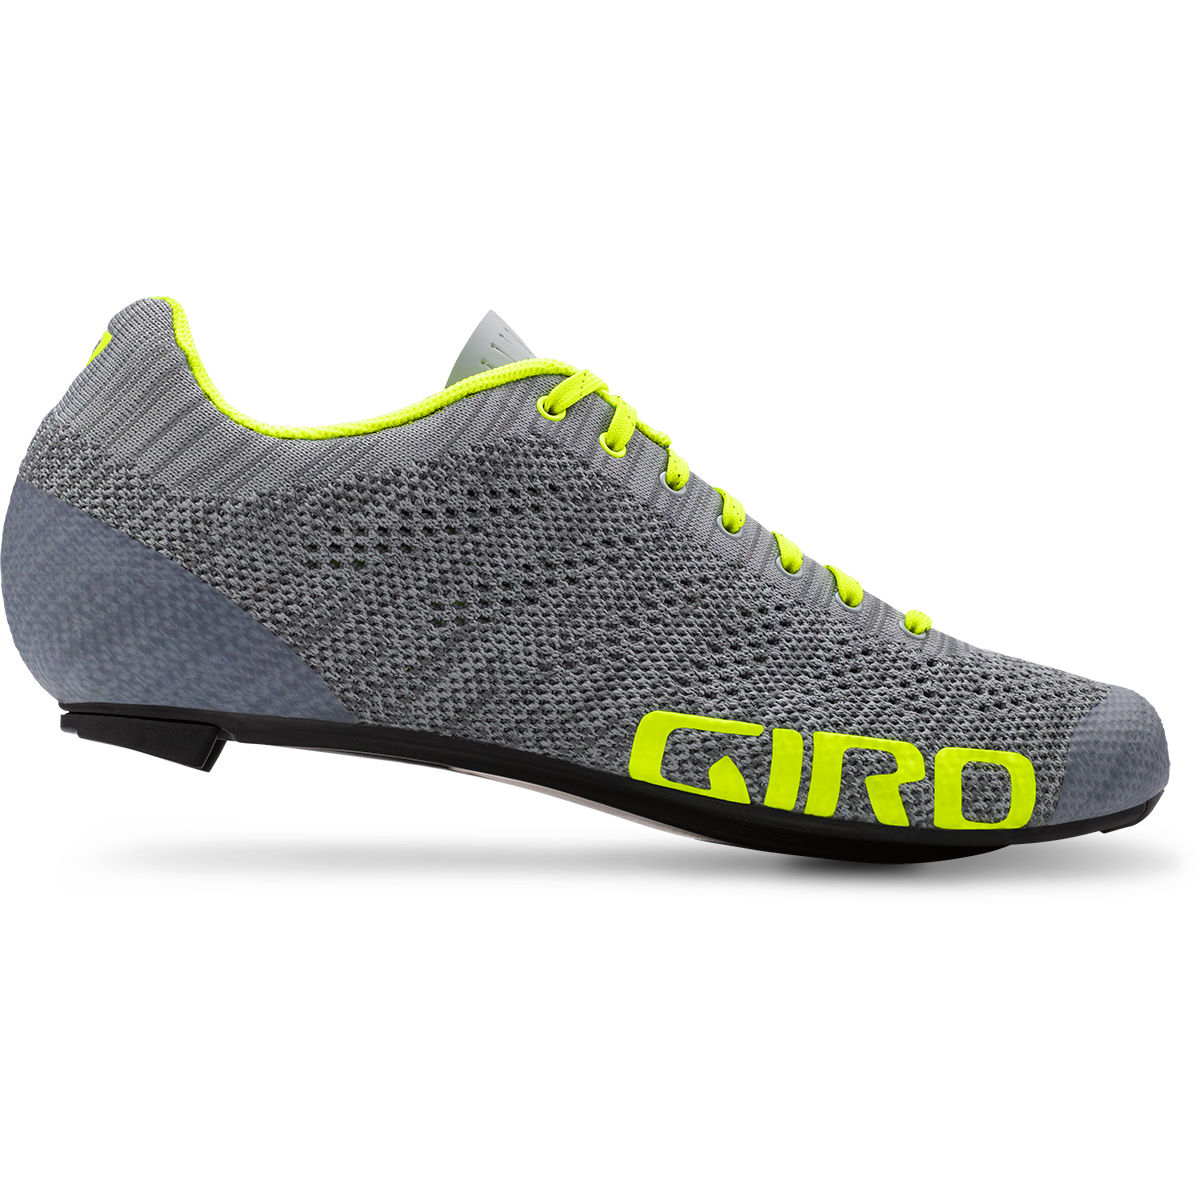 Giro Giro Empire E70 Knit Road Shoe   Cycling Shoes